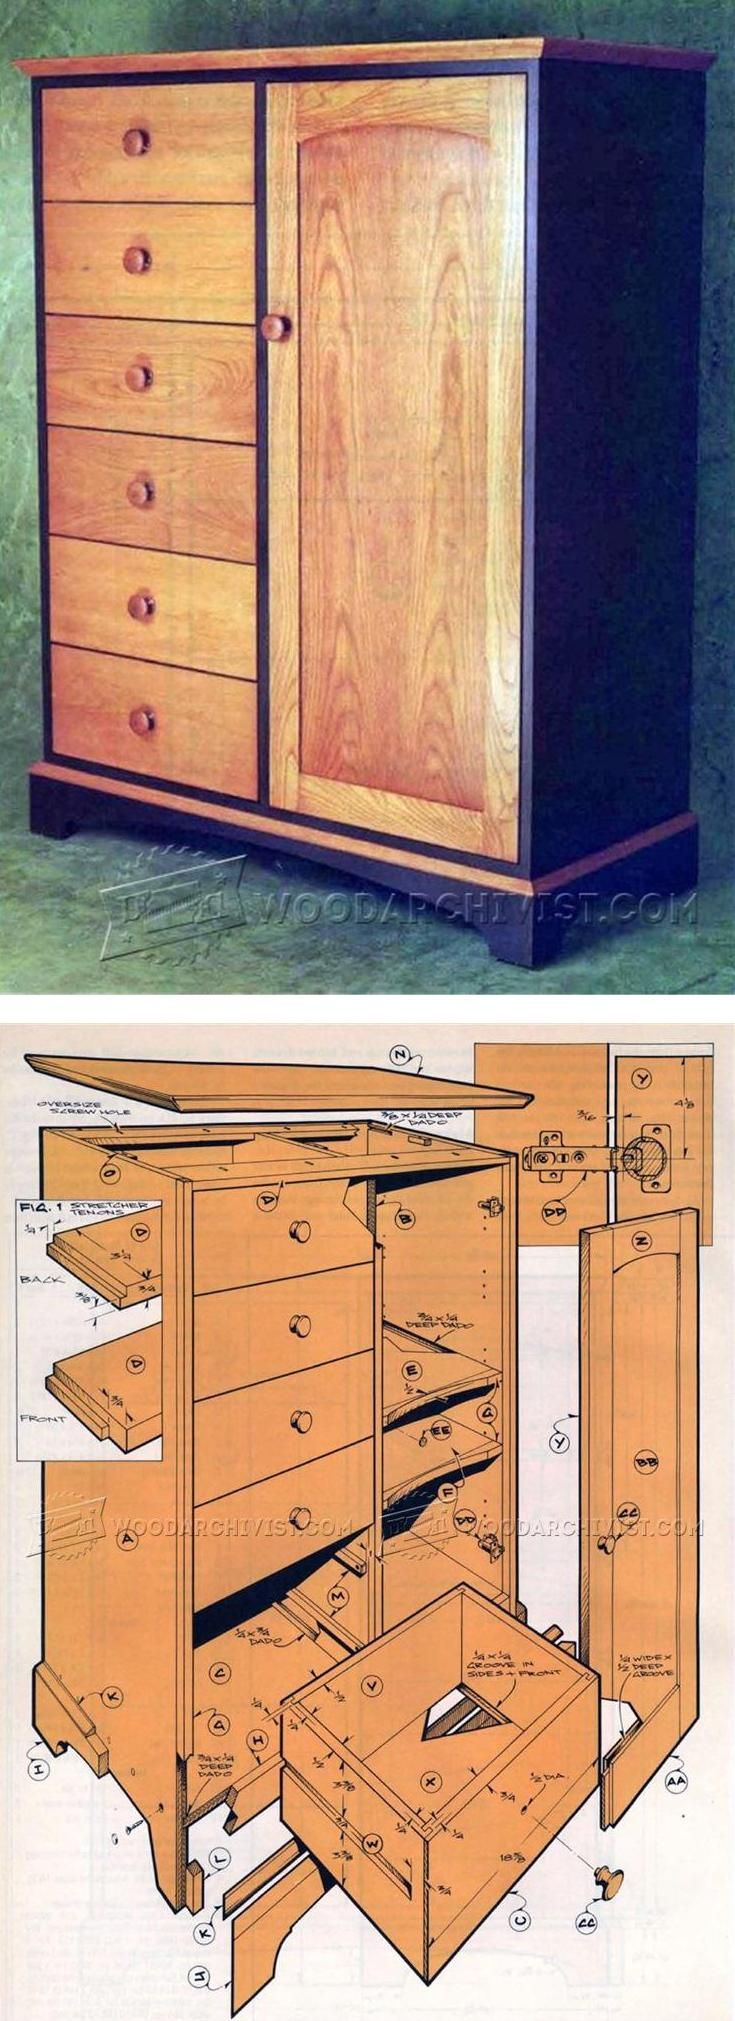 Cupboard Plans - Furniture Plans and Projects | WoodArchivist.com